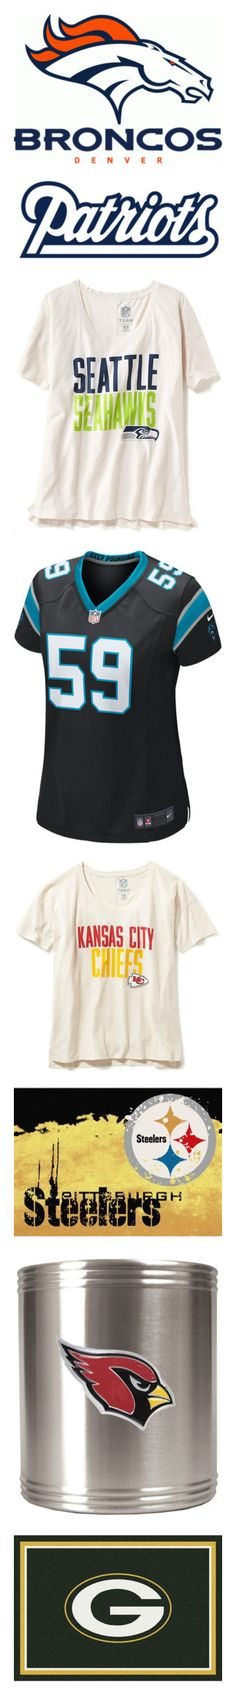 """""""NFL Divisional Round"""" by vanessa-stegall ❤ liked on Polyvore featuring sport, tops, t-shirts, white tee, short sleeve t shirt, white scoop neck tee, white t shirt, logo t shirts, black jersey and nike jerseys"""